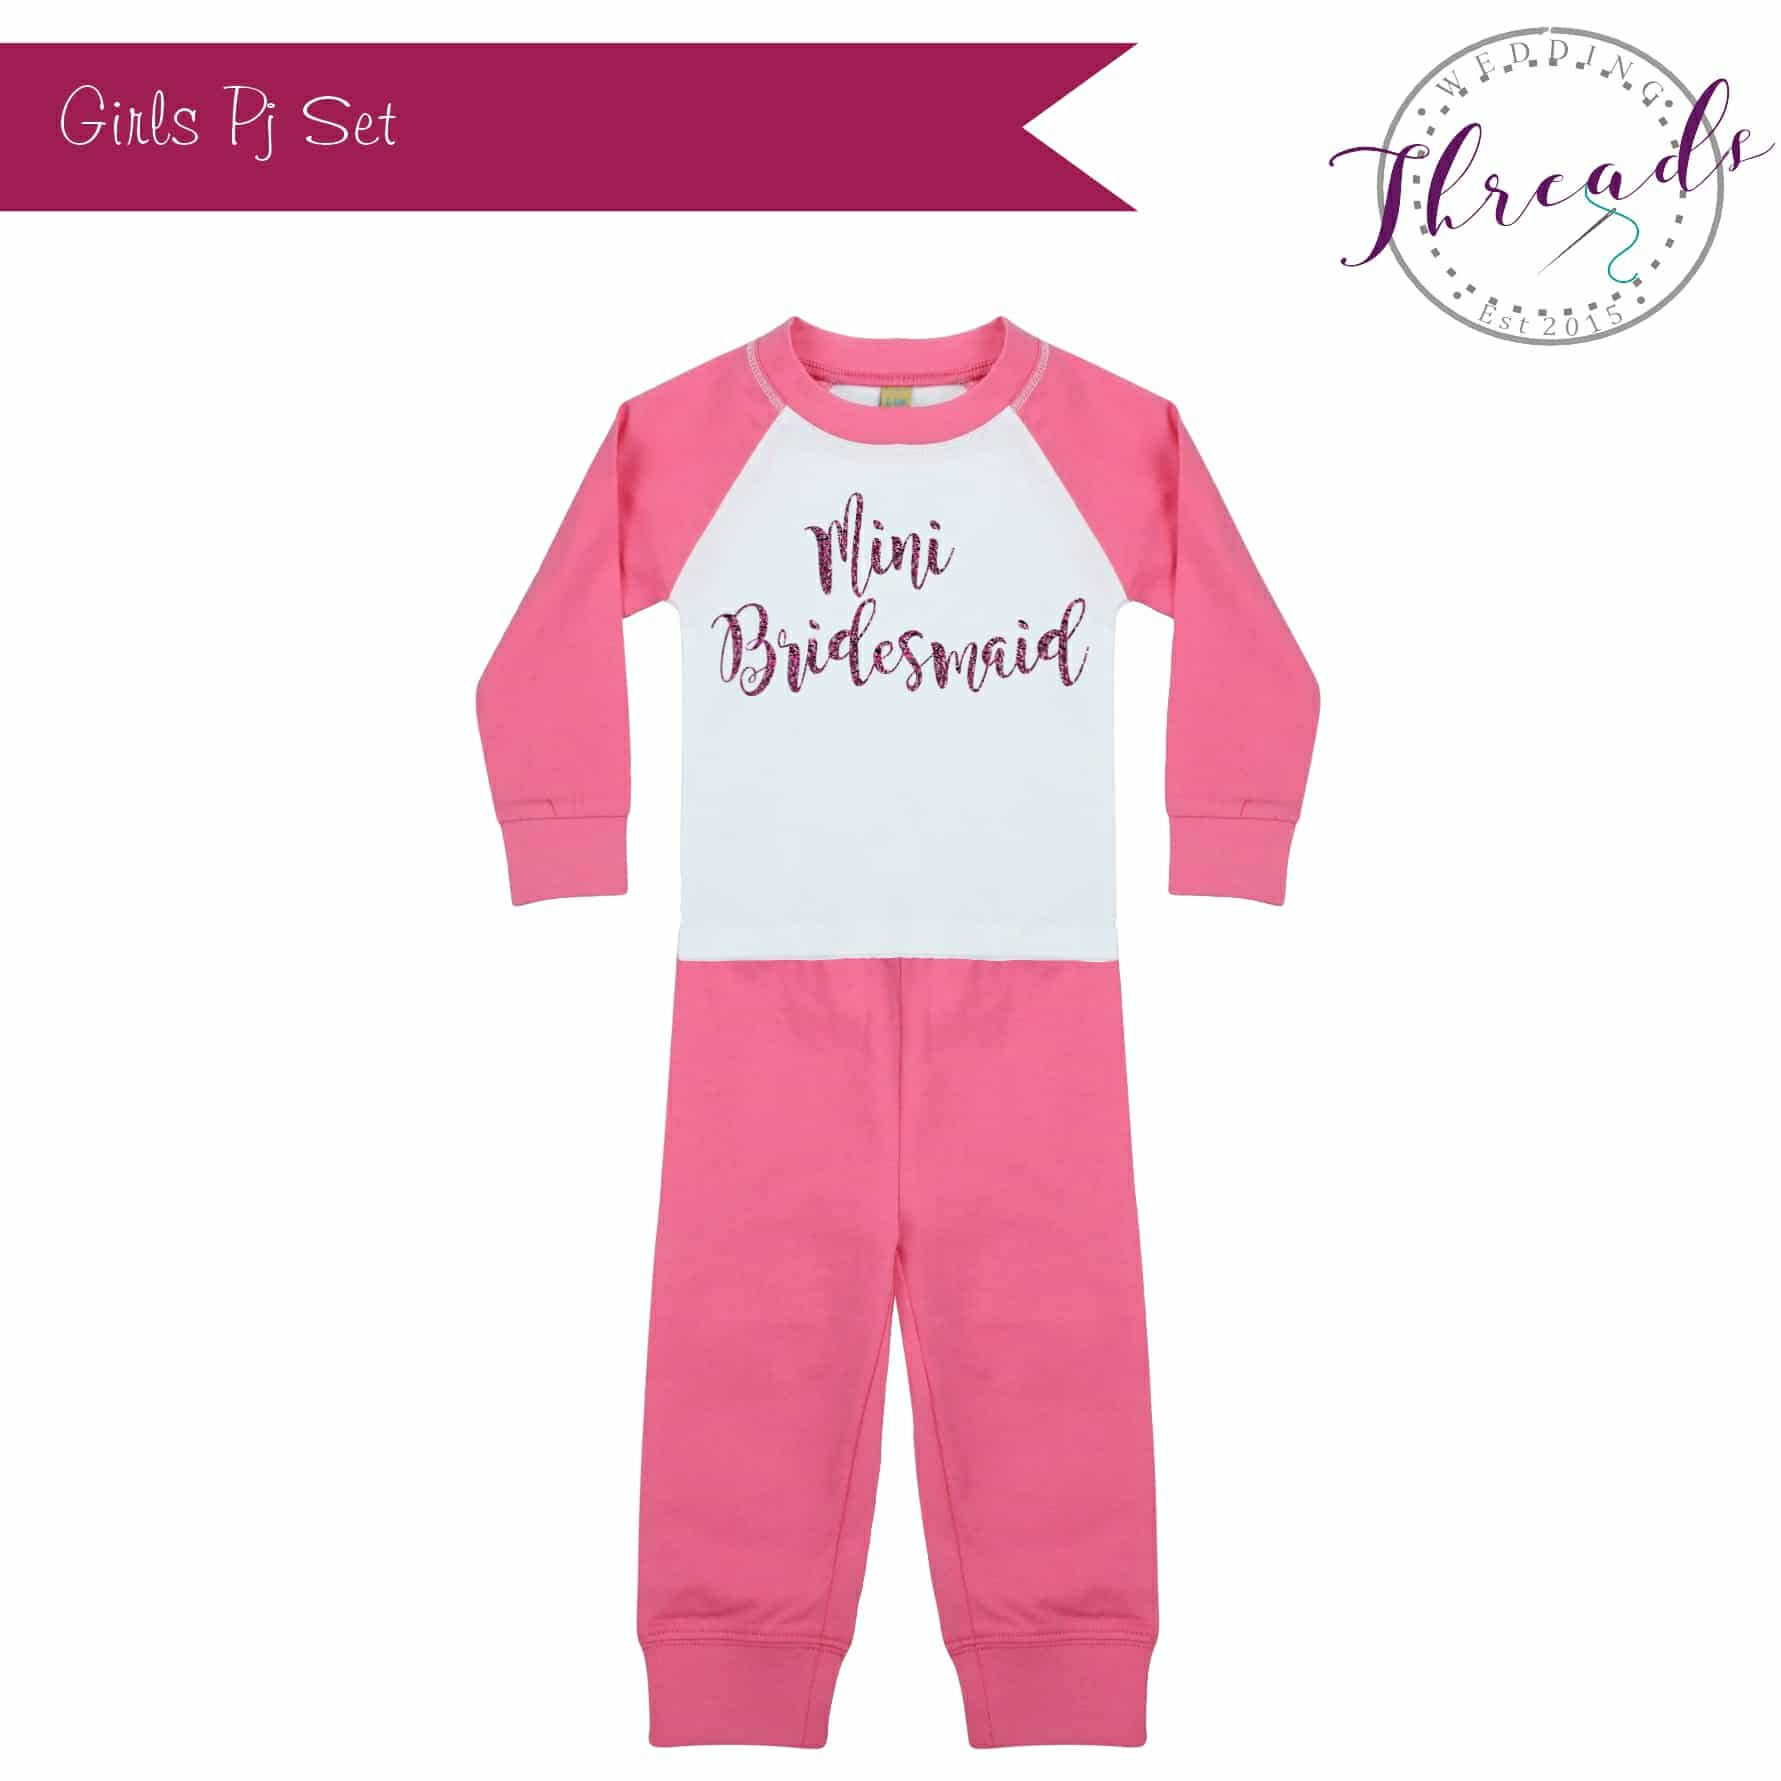 Mini Bridesmaid Wedding Pyjamas